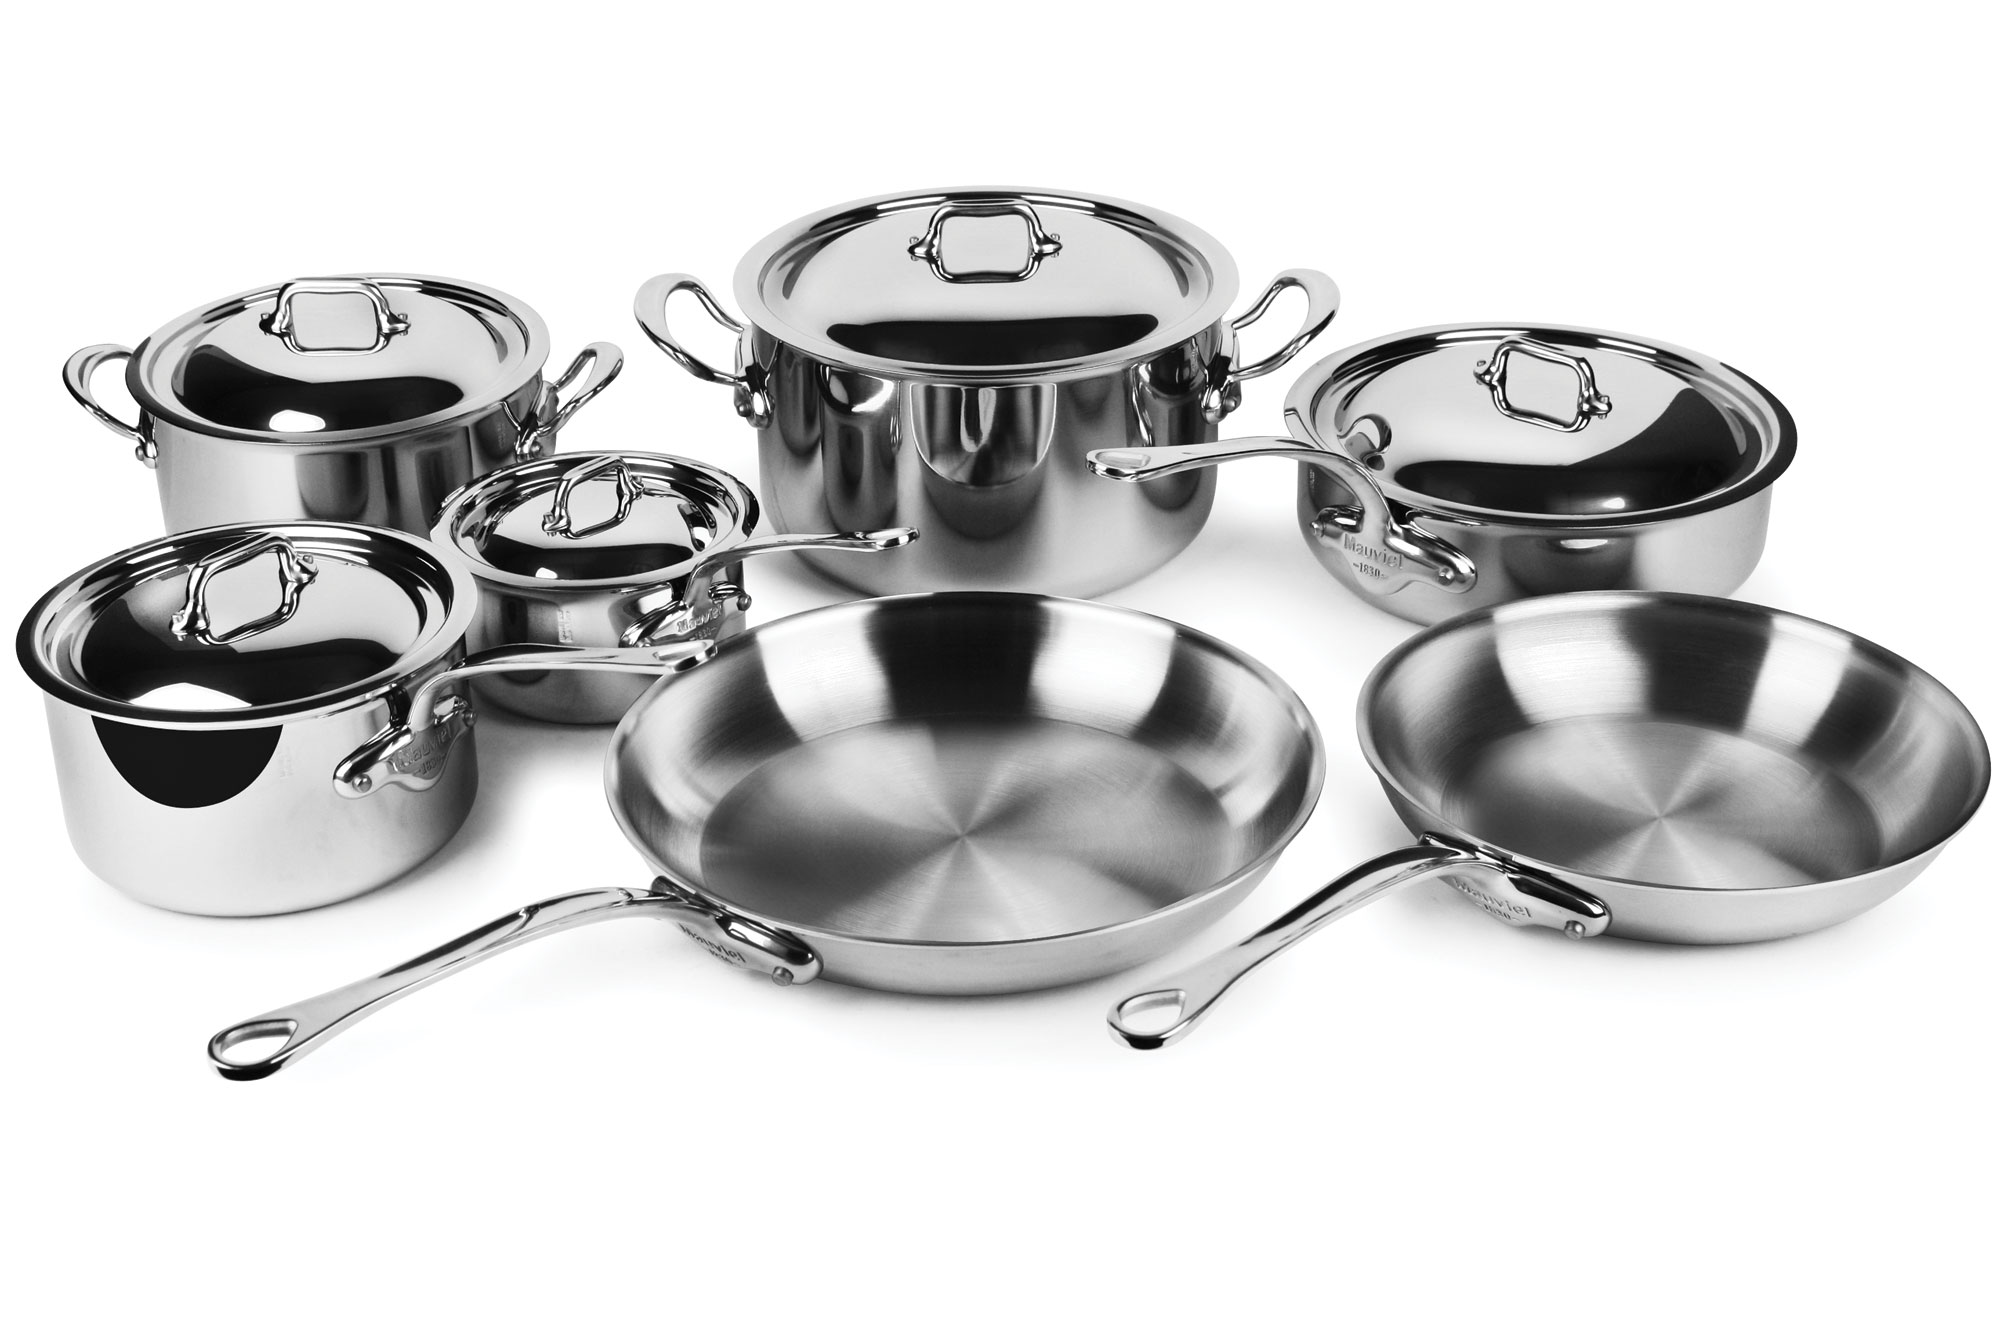 Mauviel M Cook Stainless Steel Cookware Set 12 Piece